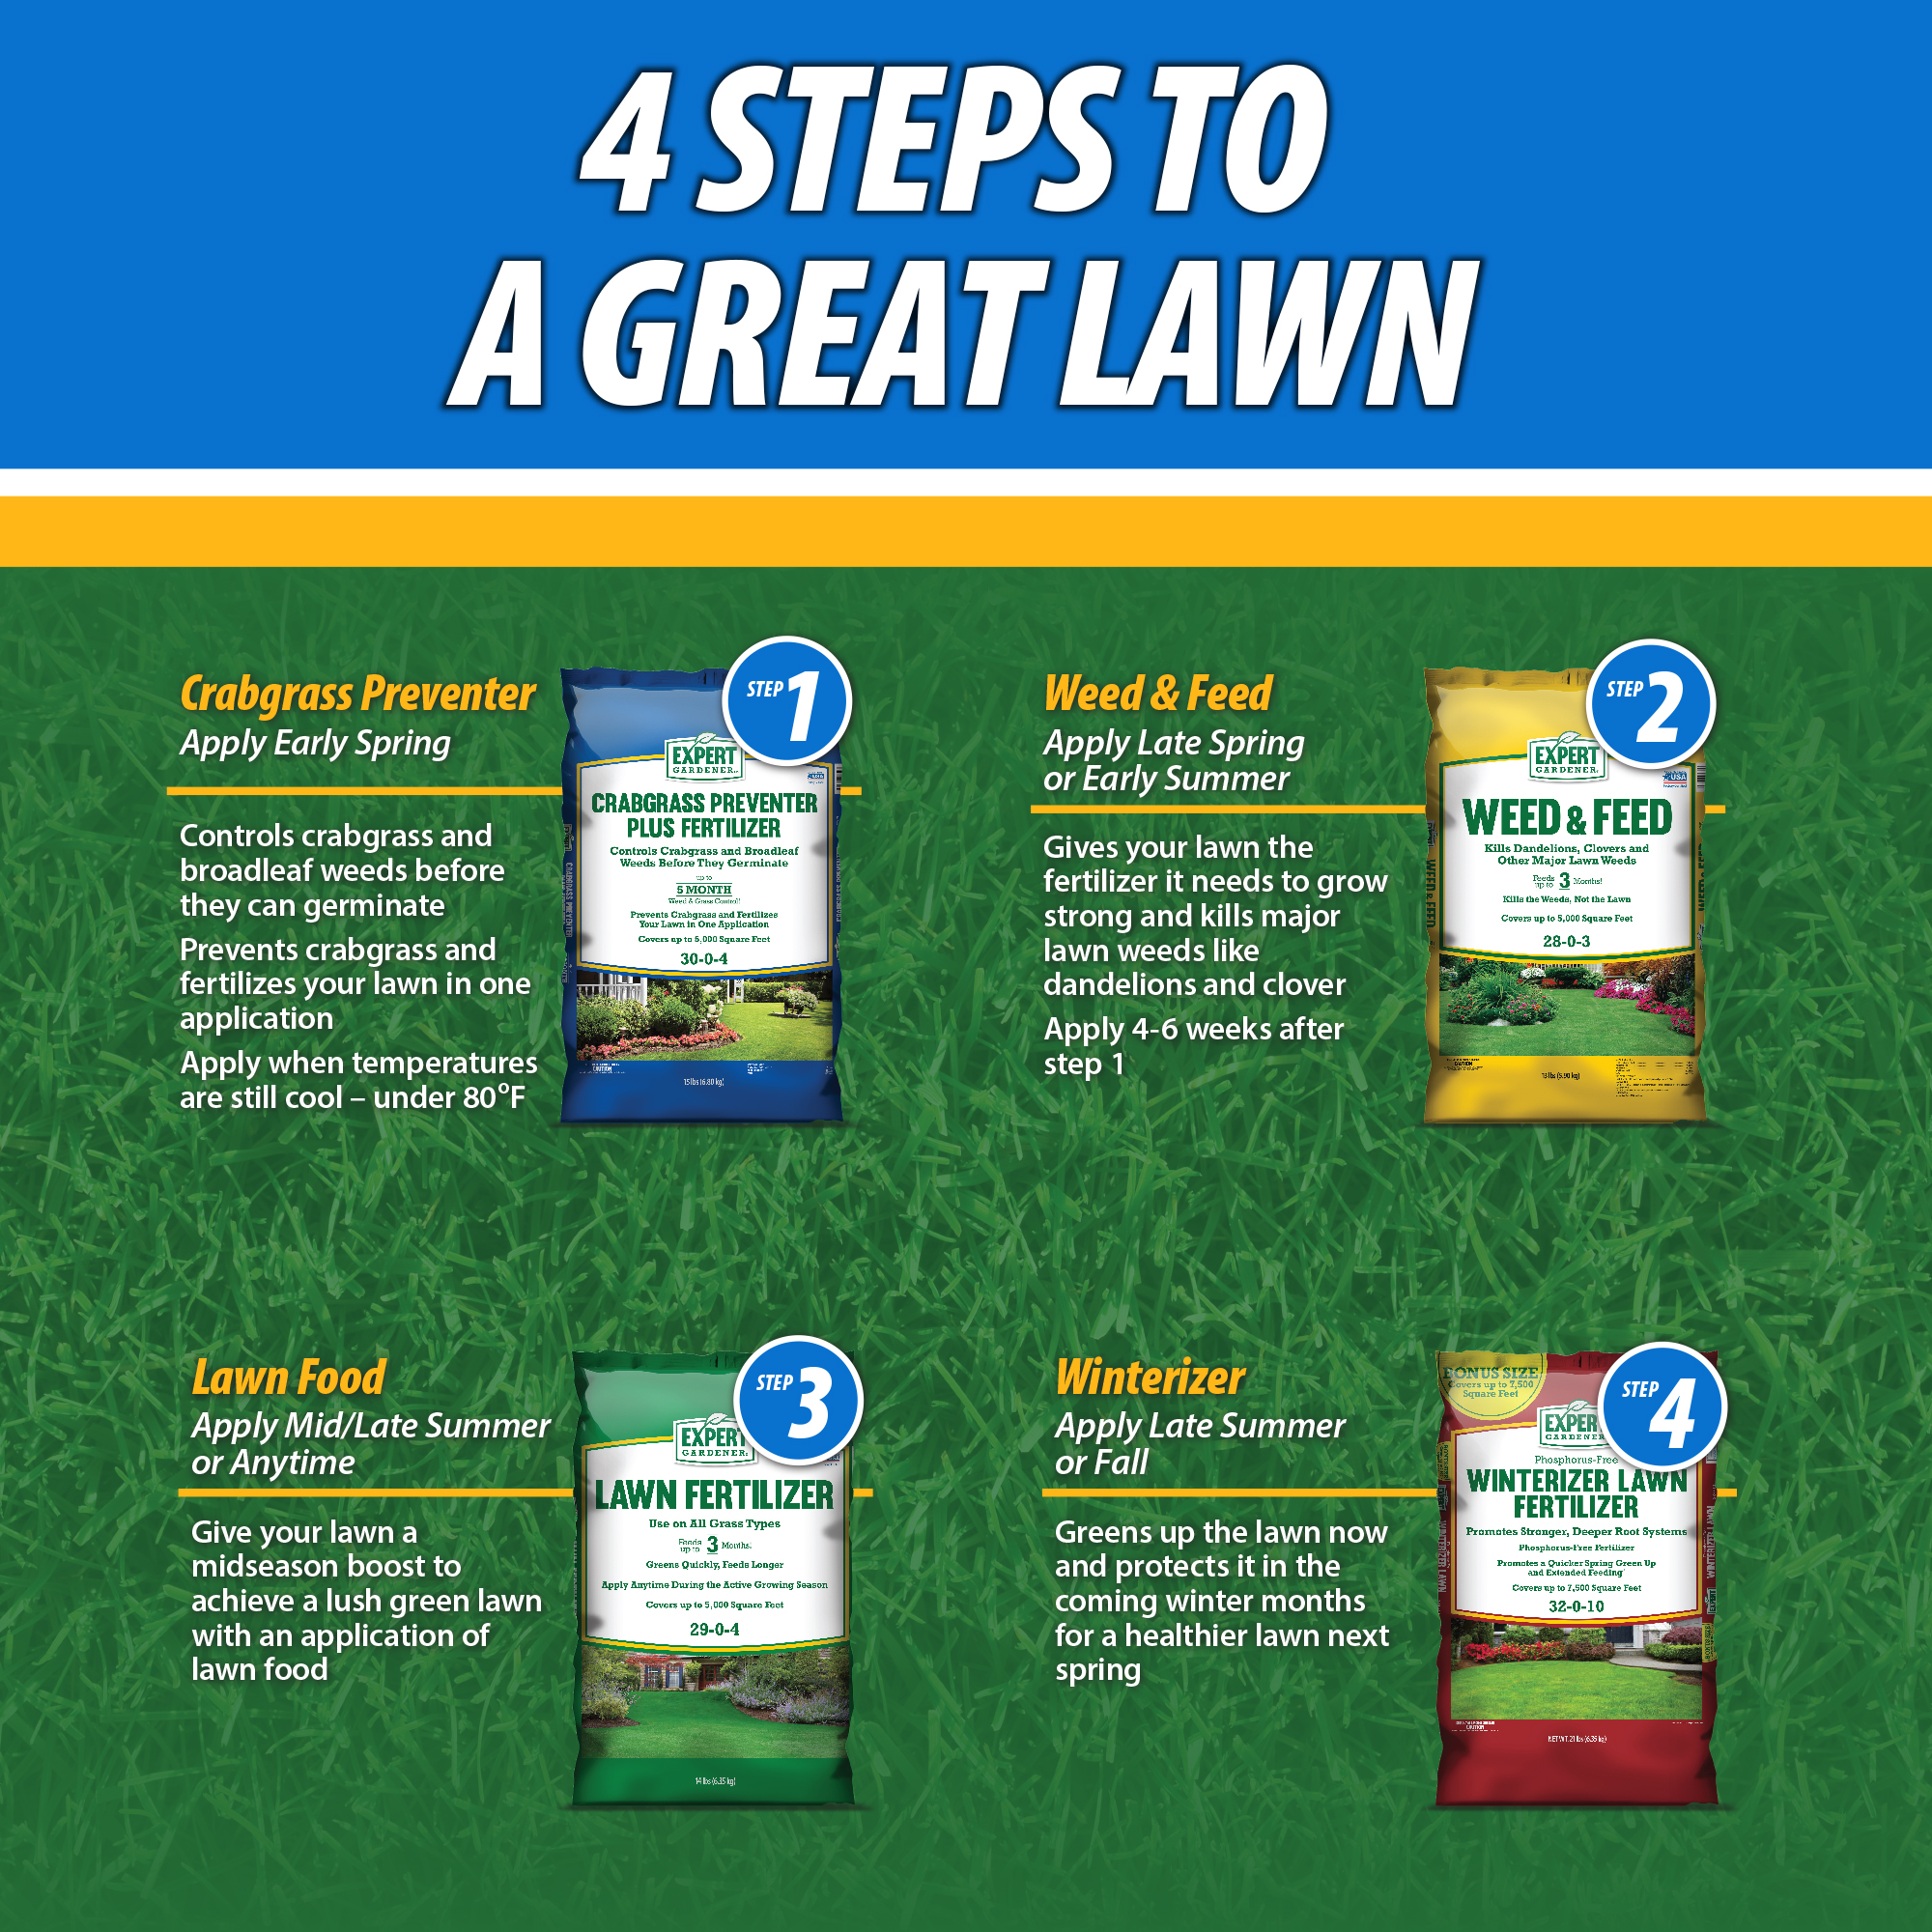 expert gardener weed and feed. Expert Gardener 15,000 Square Feet Weed And Feed Lawn Fertilizer, 28-0-3 N